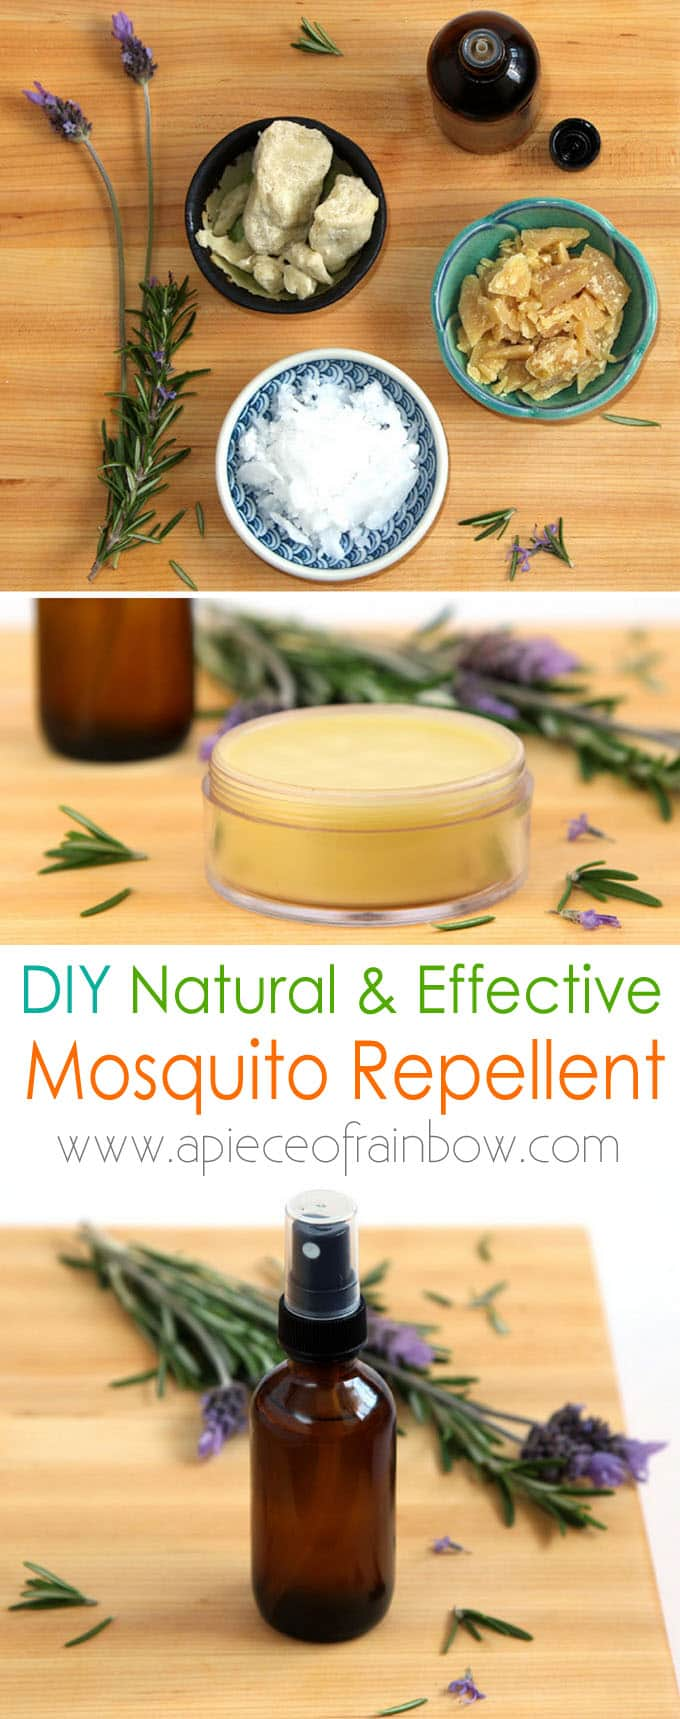 Homemade Natural Mosquito Repellent 2 Easy Recipes That Work Wonders A Piece Of Rainbow,How To Update Laminate Kitchen Cabinets